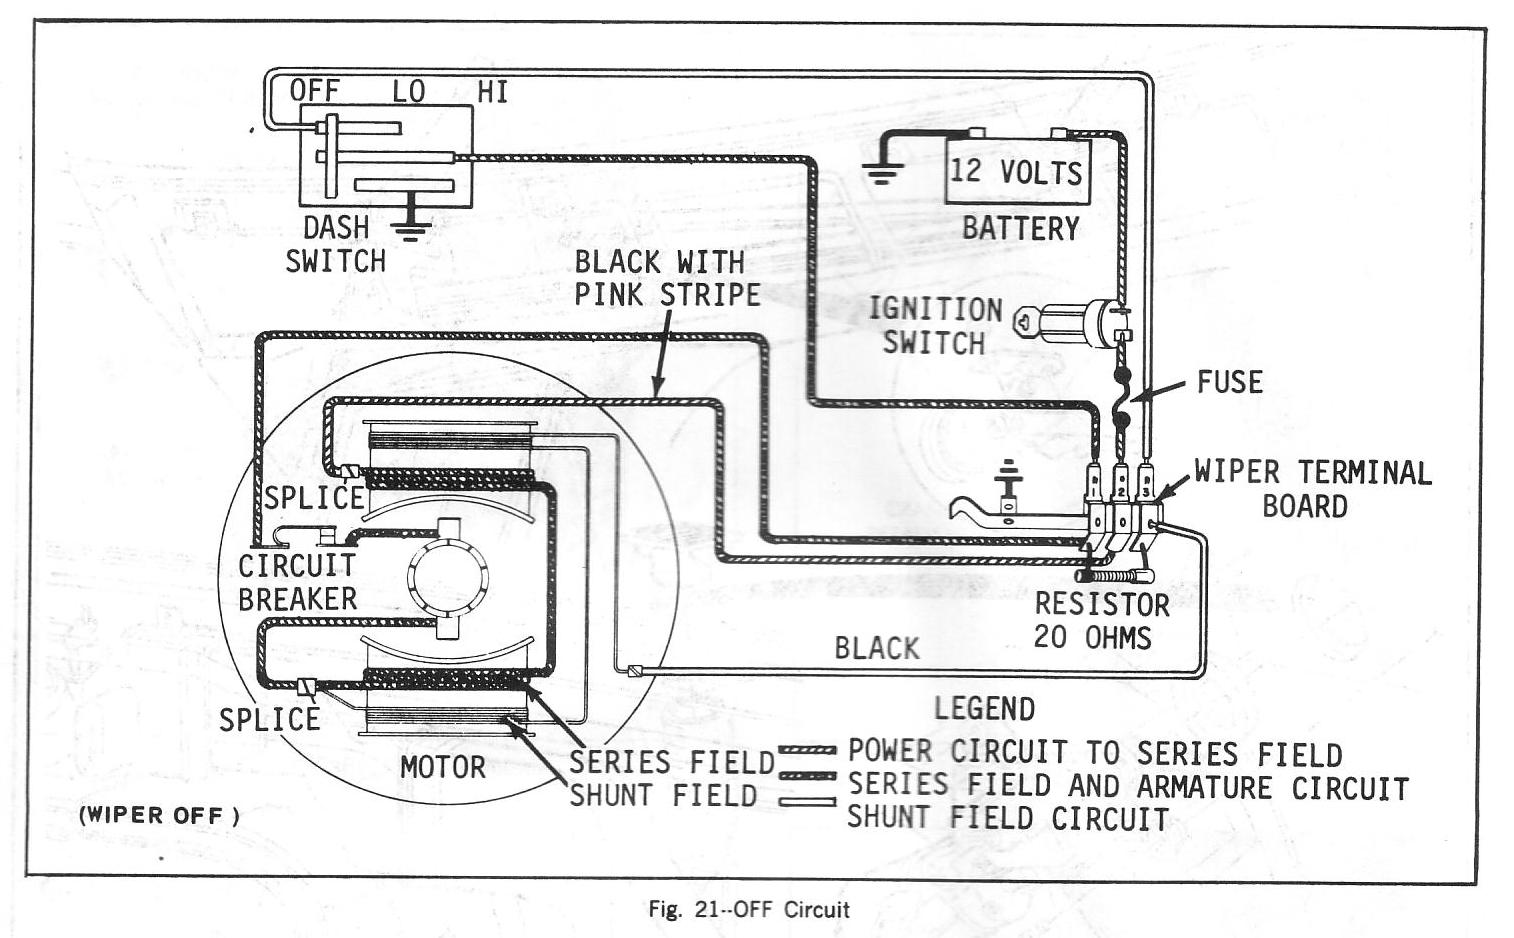 hight resolution of jaguar wiper motor wiring diagram